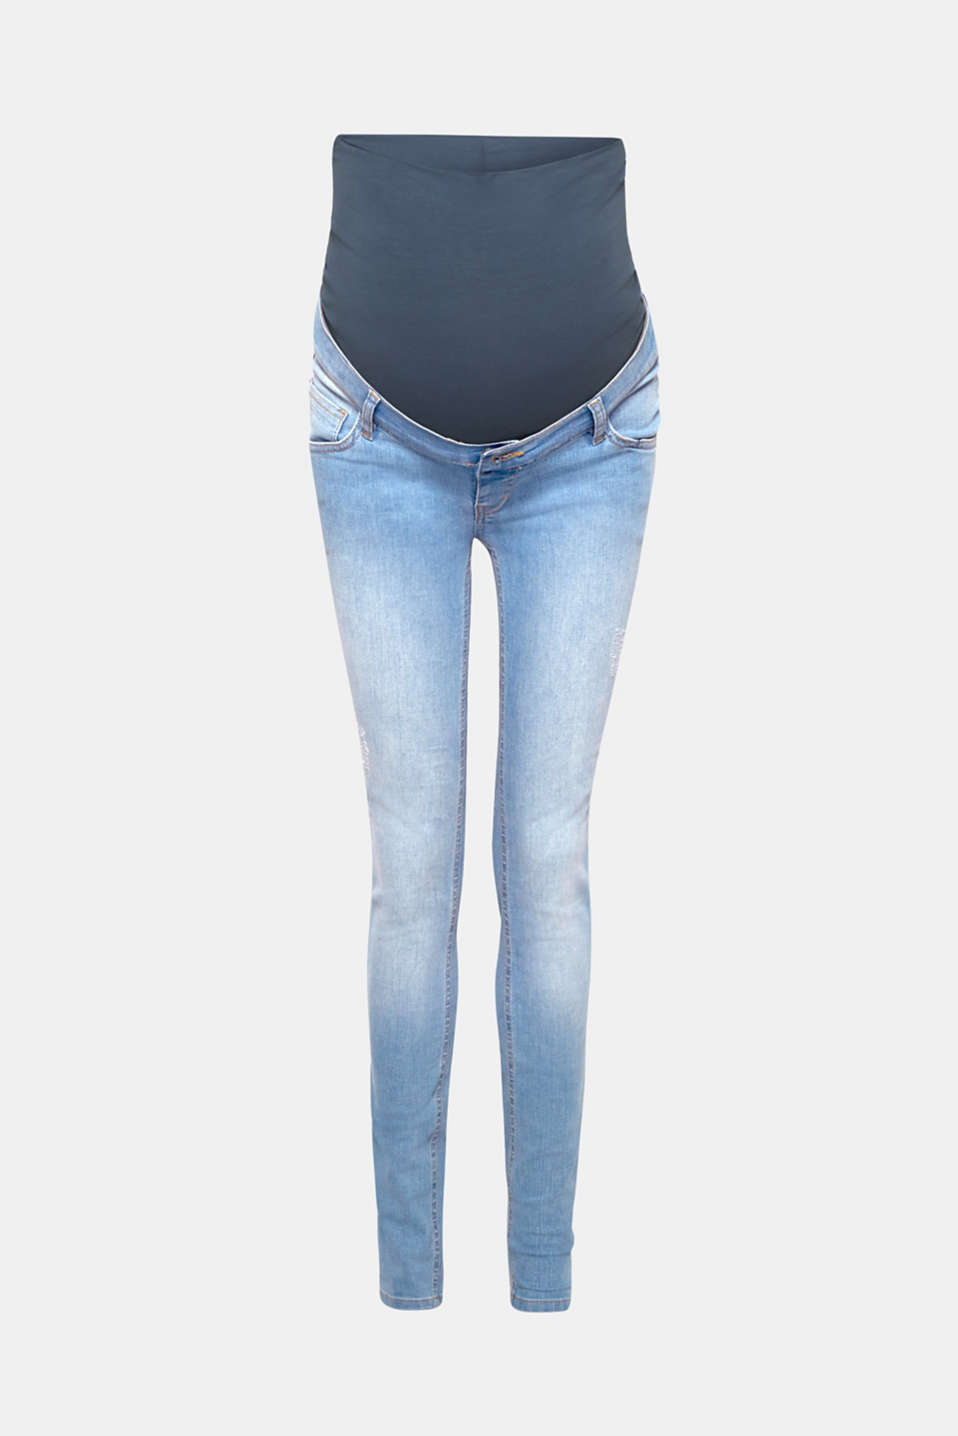 Modieus en functioneel: smalle, coole stretchjeans met destroyed effecten en variabele band over de buik!